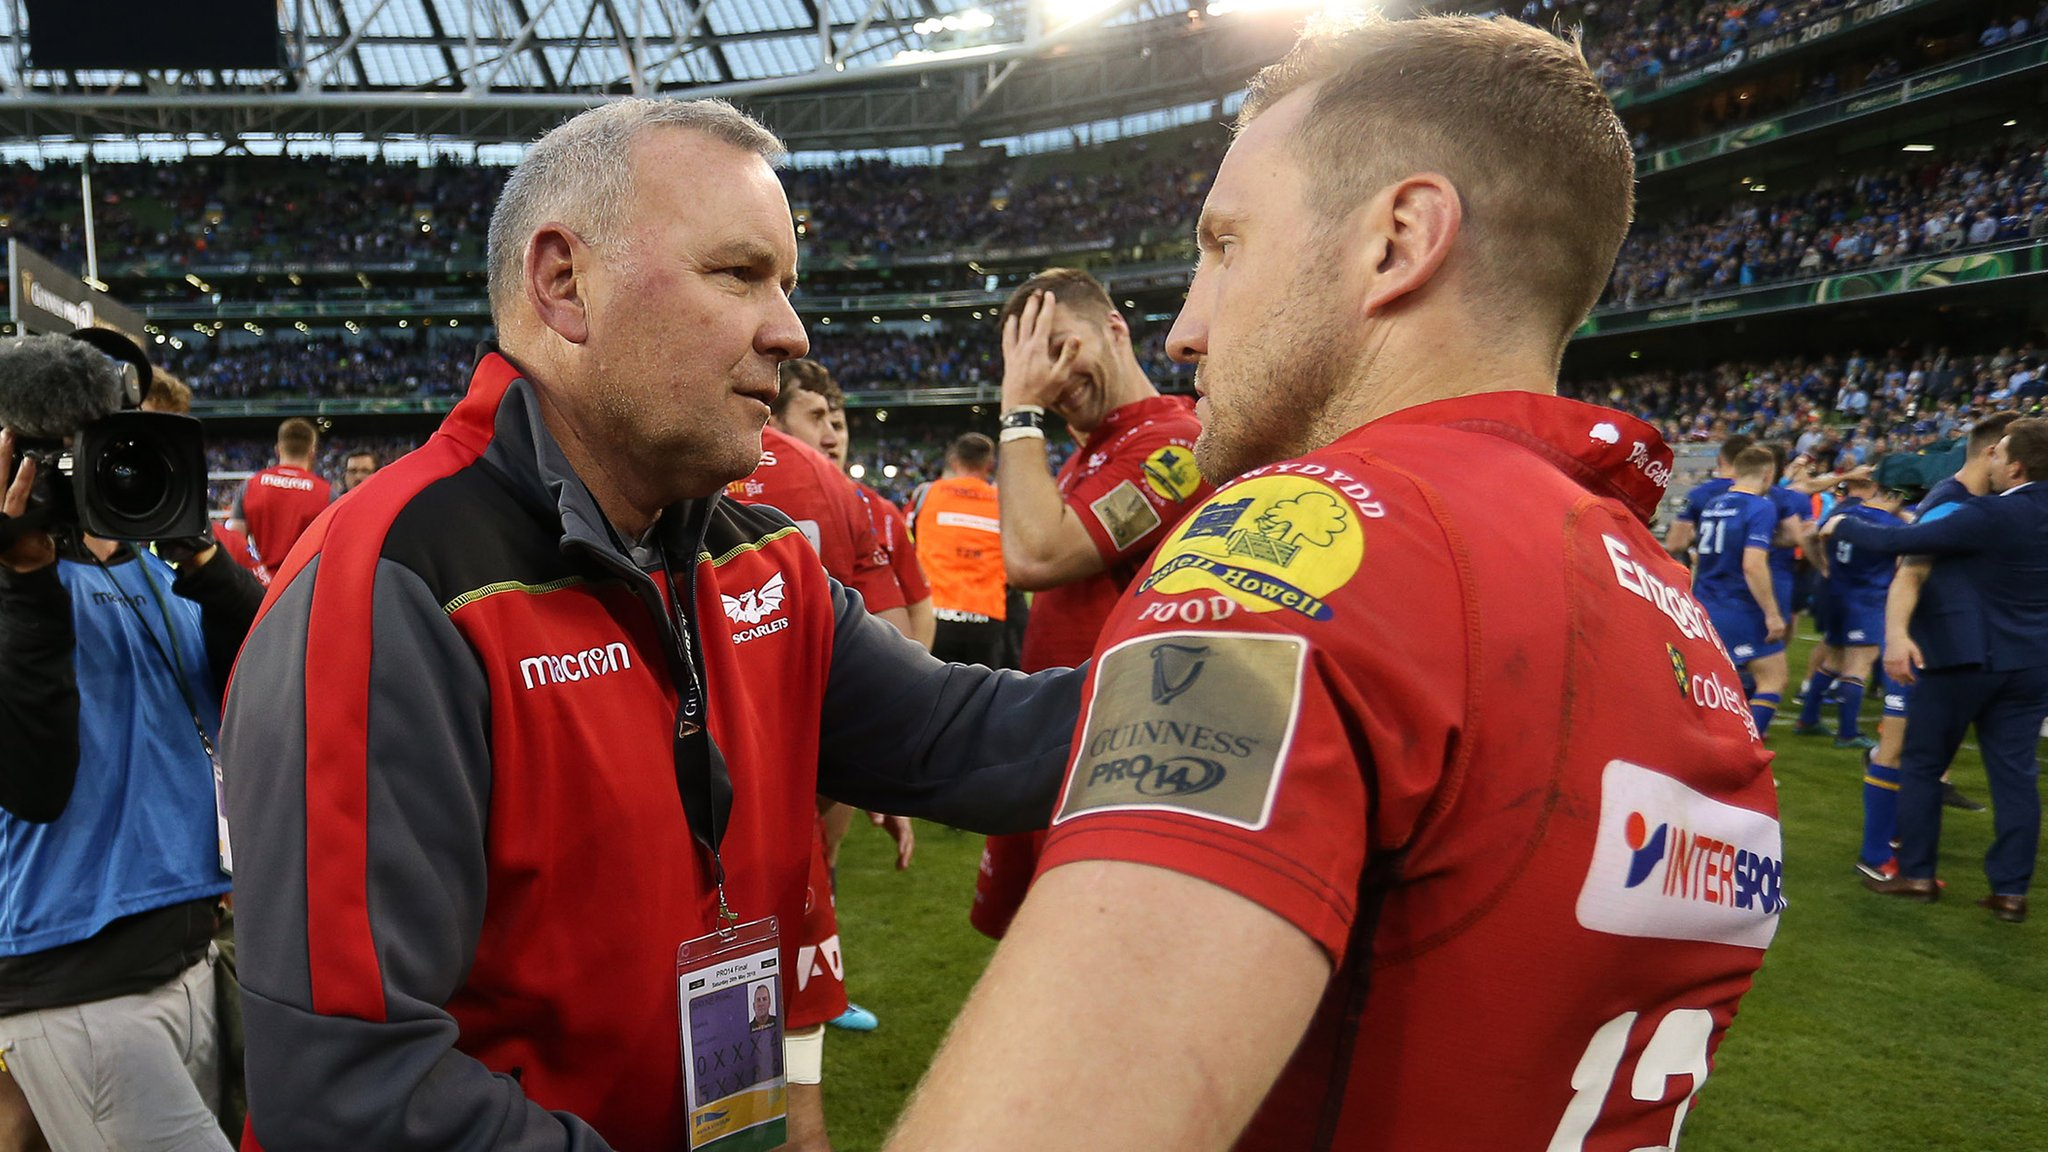 Hadleigh Parkes: Scarlets centre backs Wayne Pivac to be Wales success